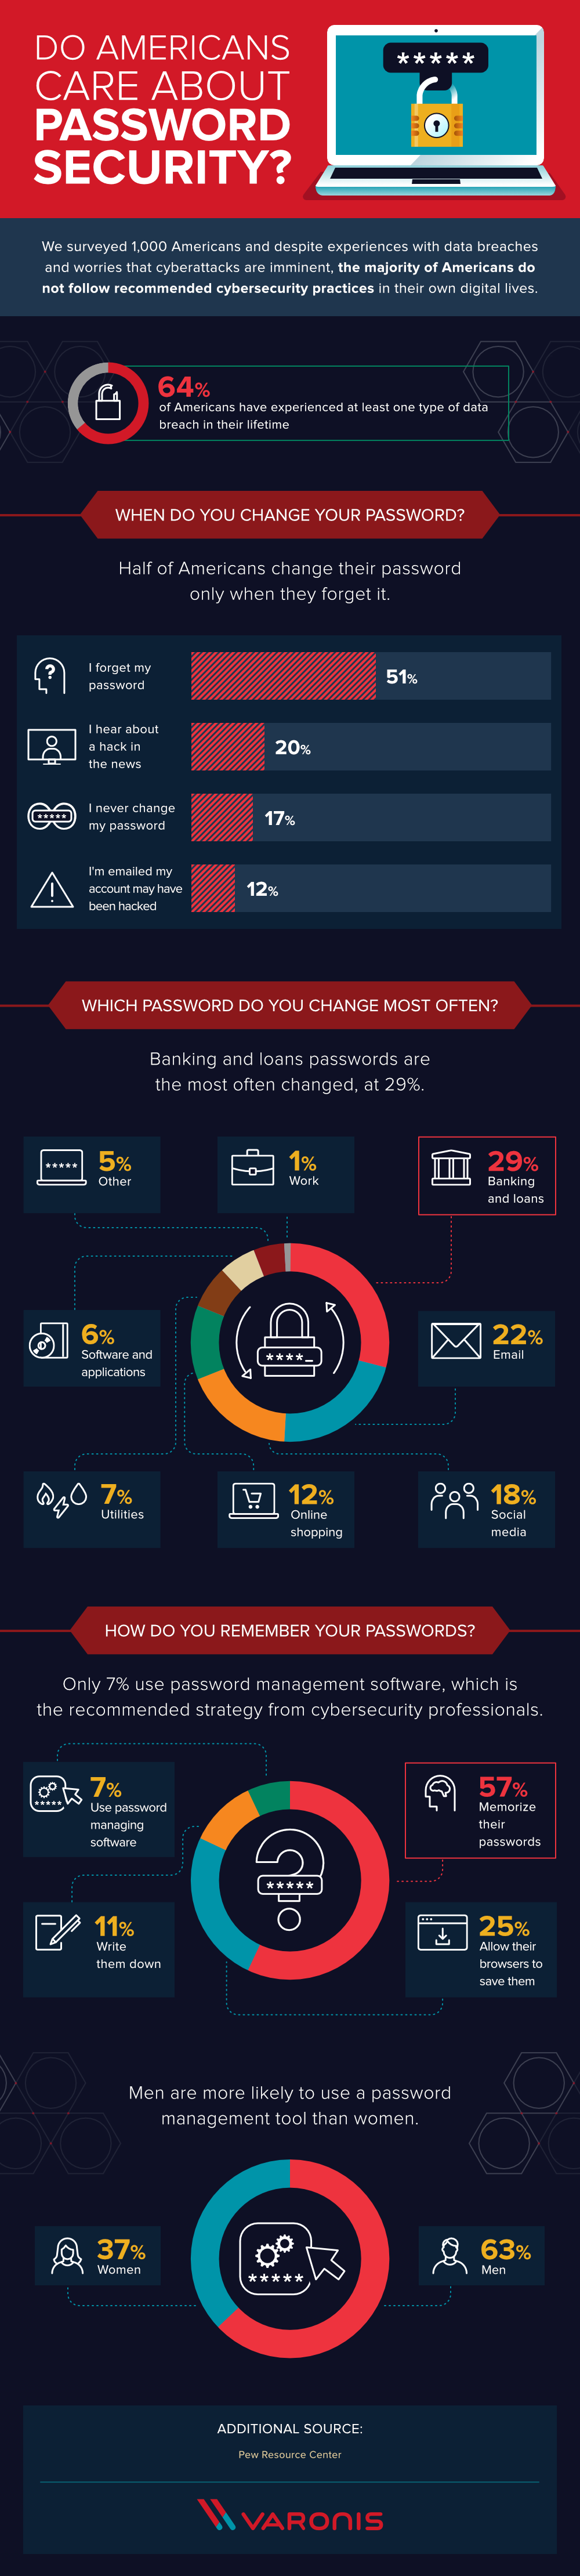 Ever change Americans ' passwords? #infographic